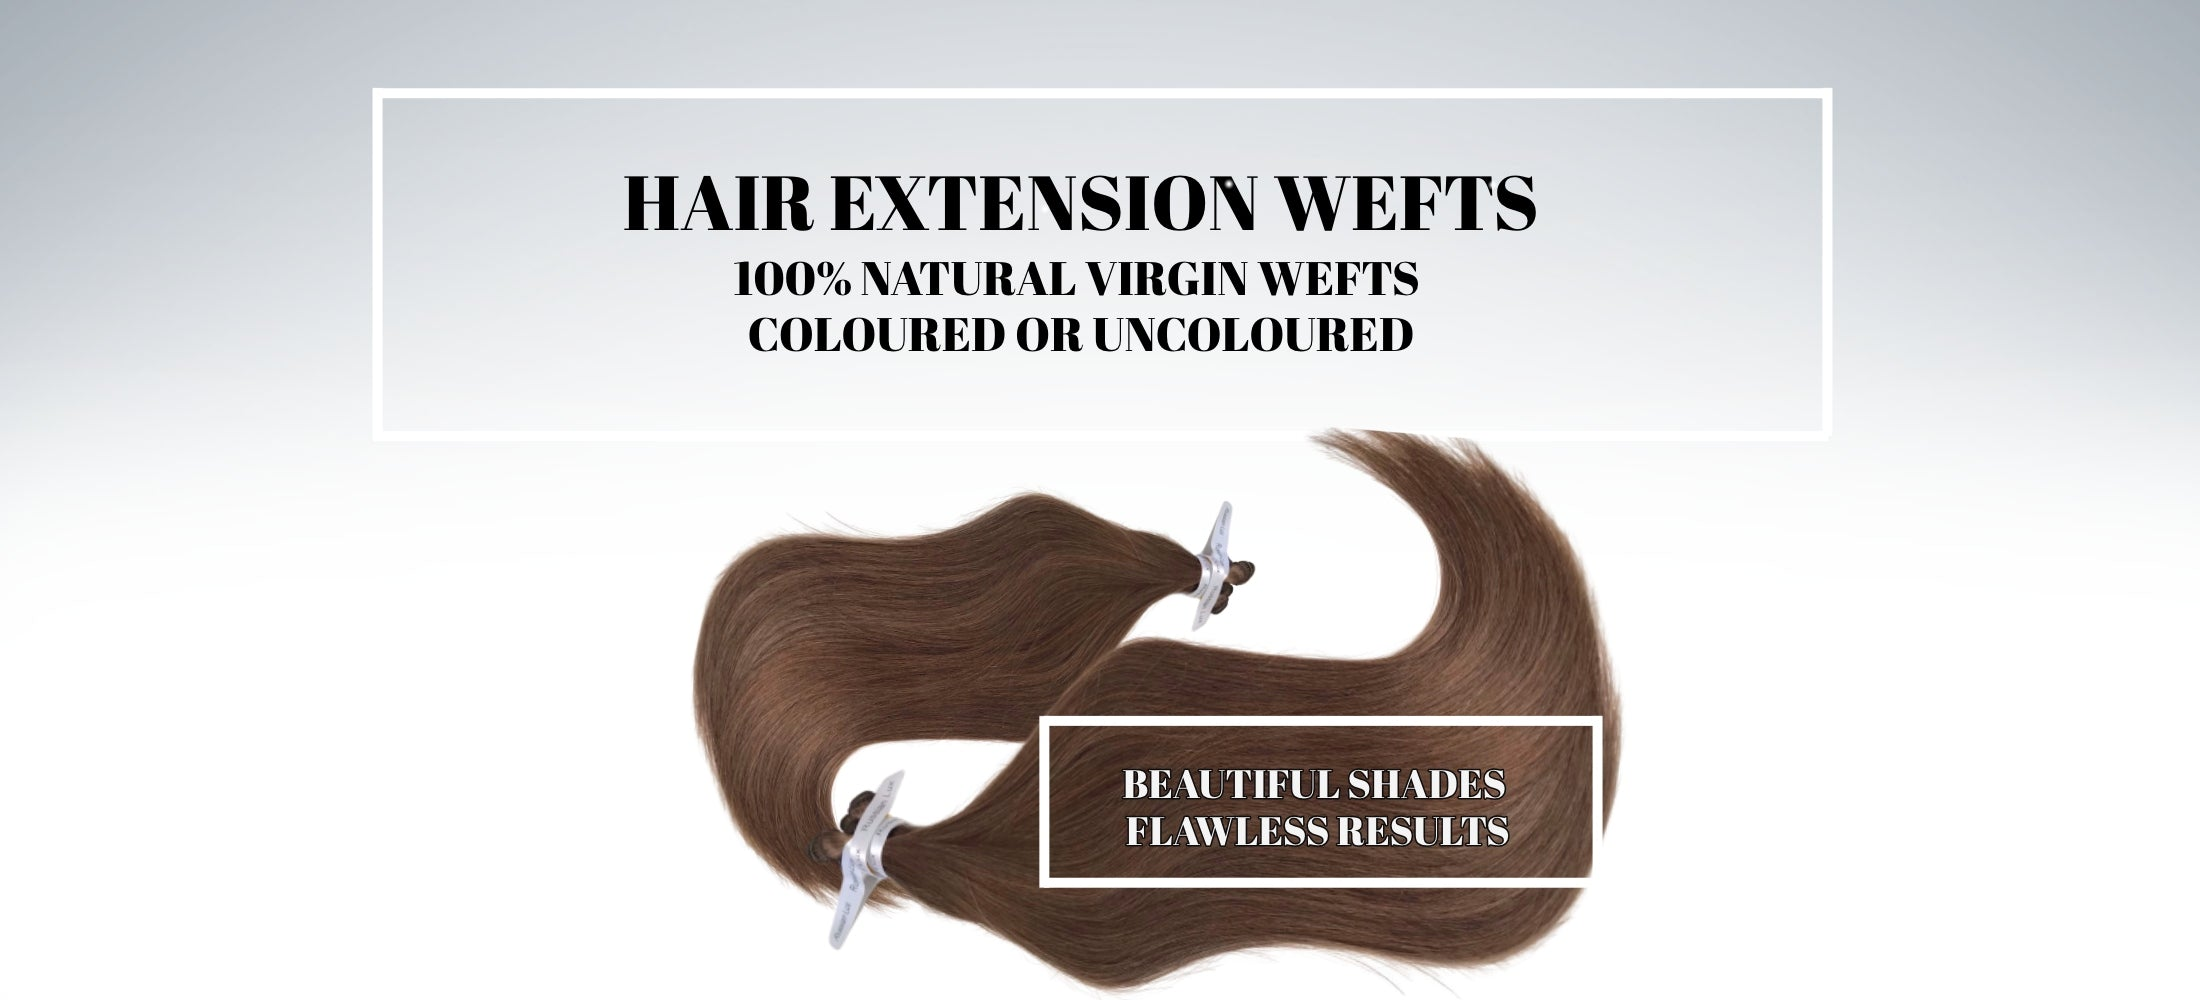 Russian Weft Hair Extensions